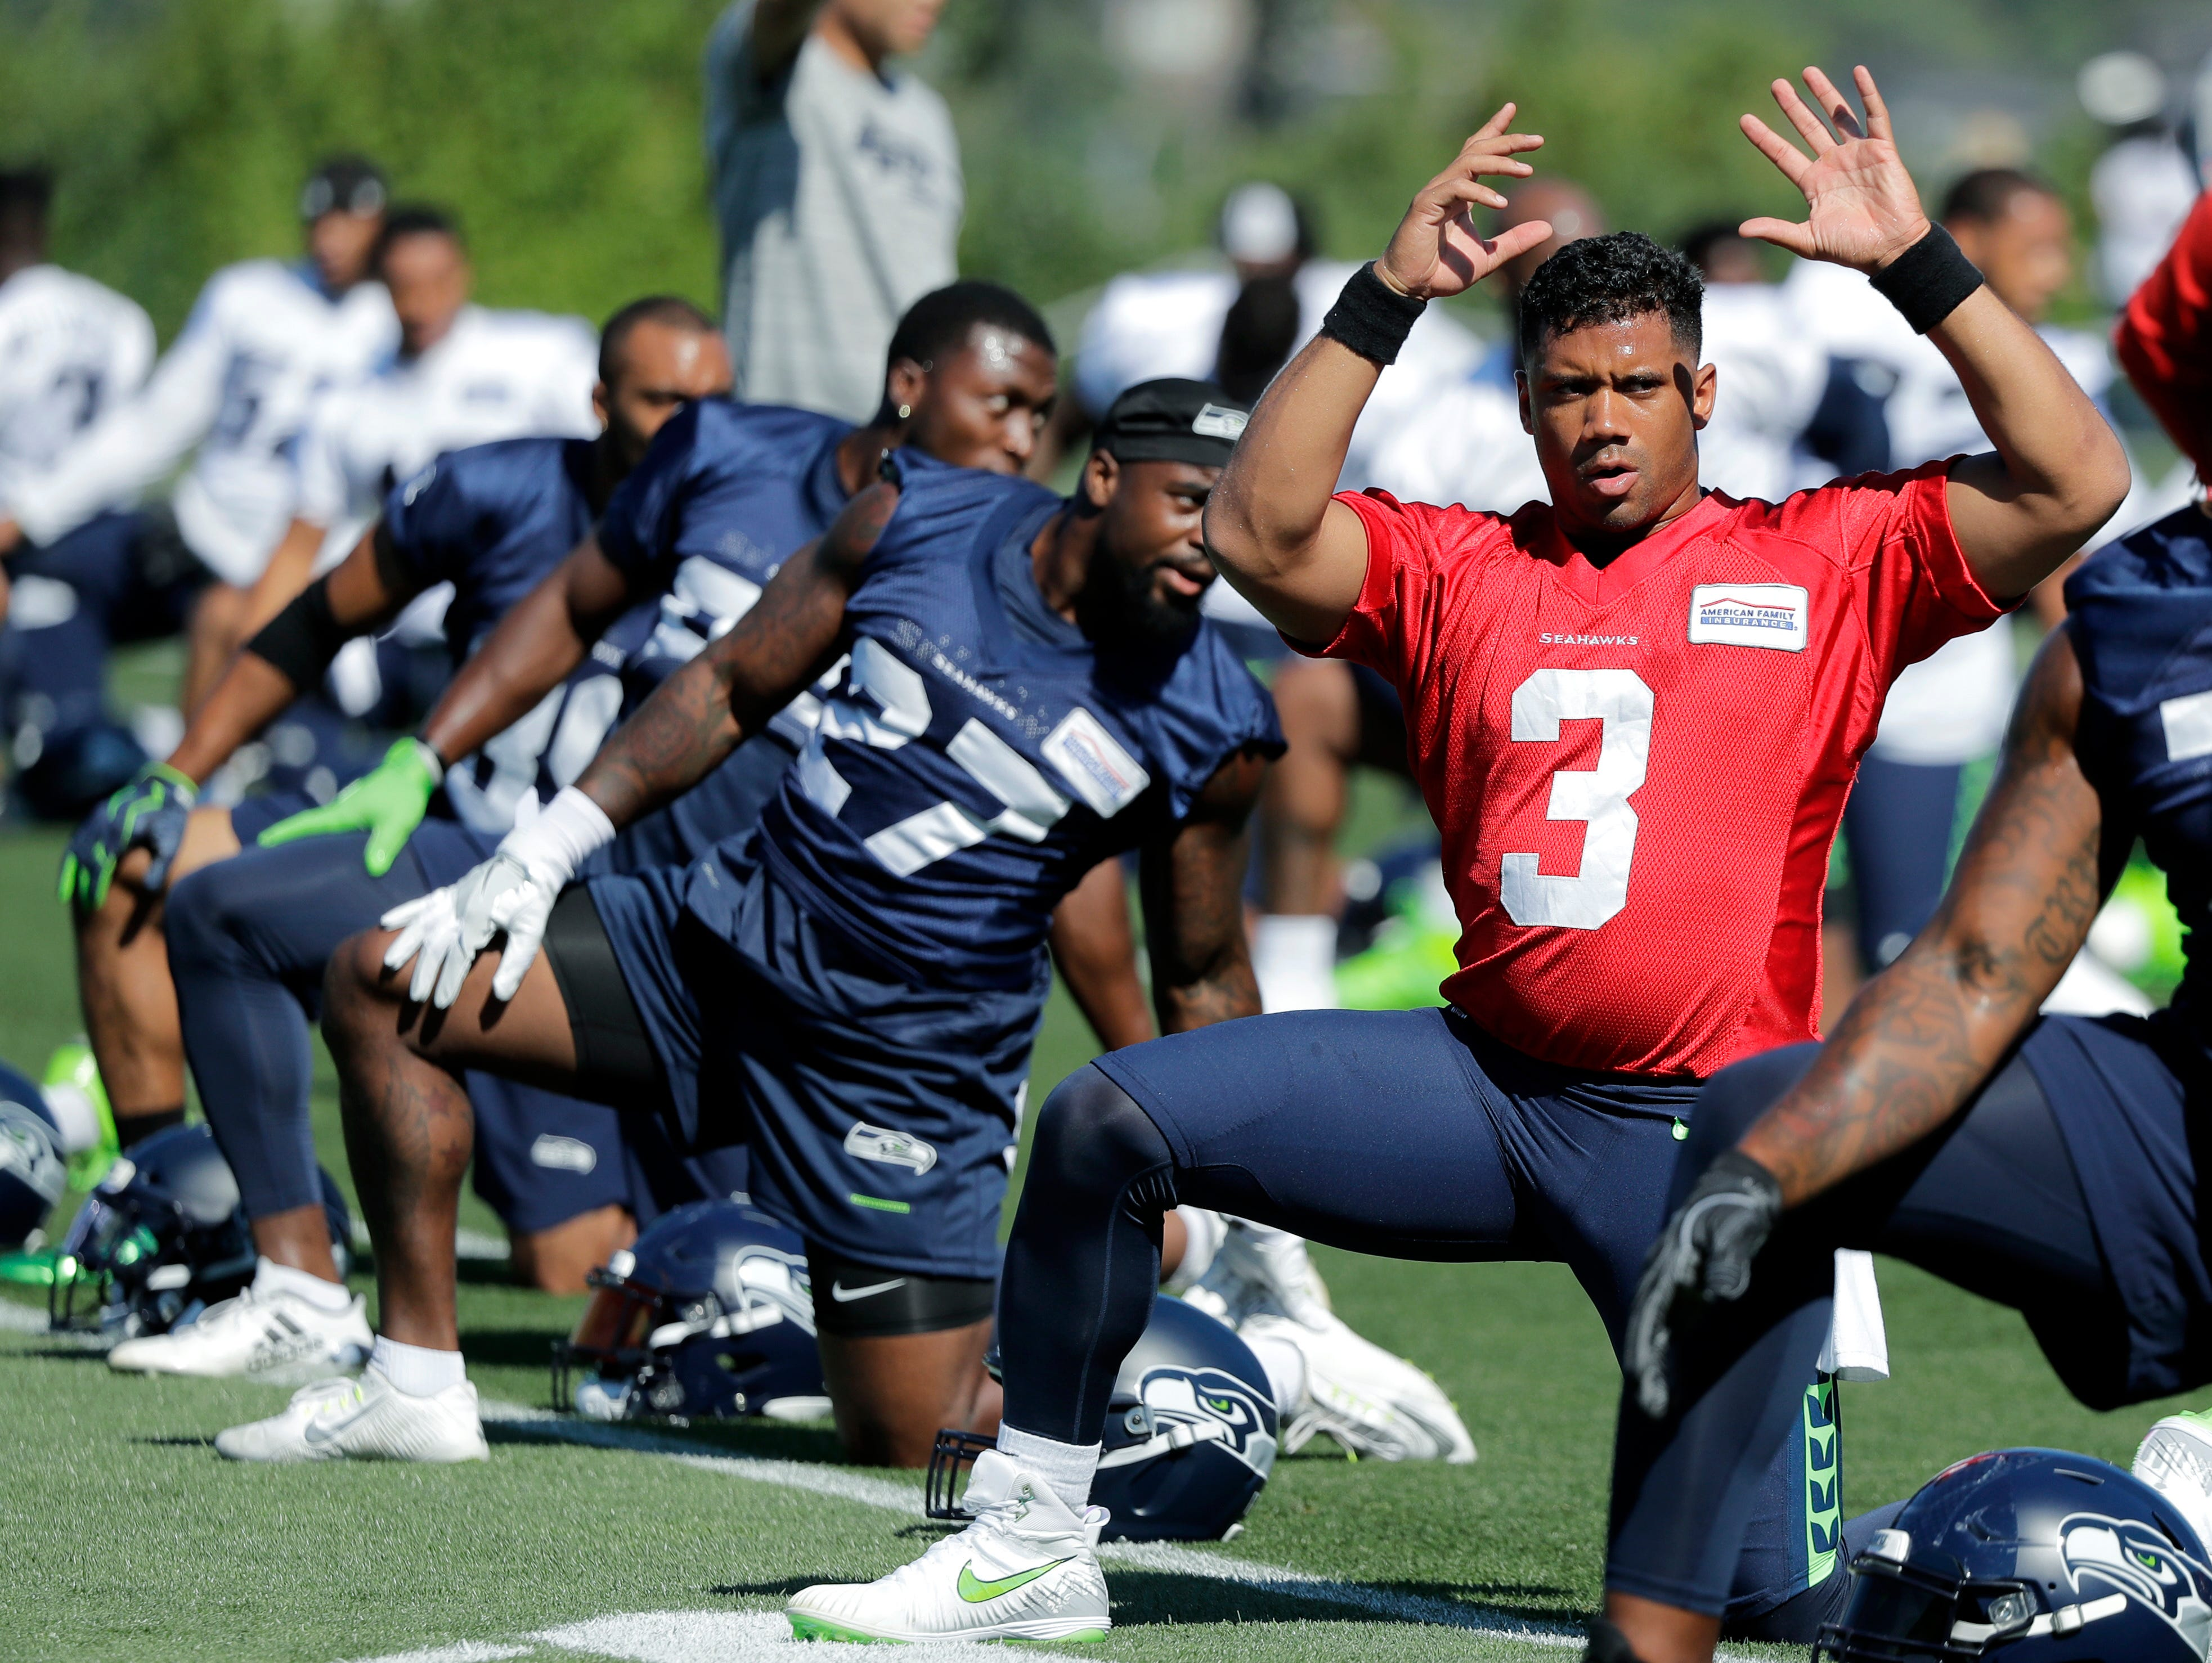 Seattle Seahawks quarterback Russell Wilson (3) stretches during NFL football training camp, Thursday, July 26, 2018, in Renton, Wash. (AP Photo/Ted S. Warren)